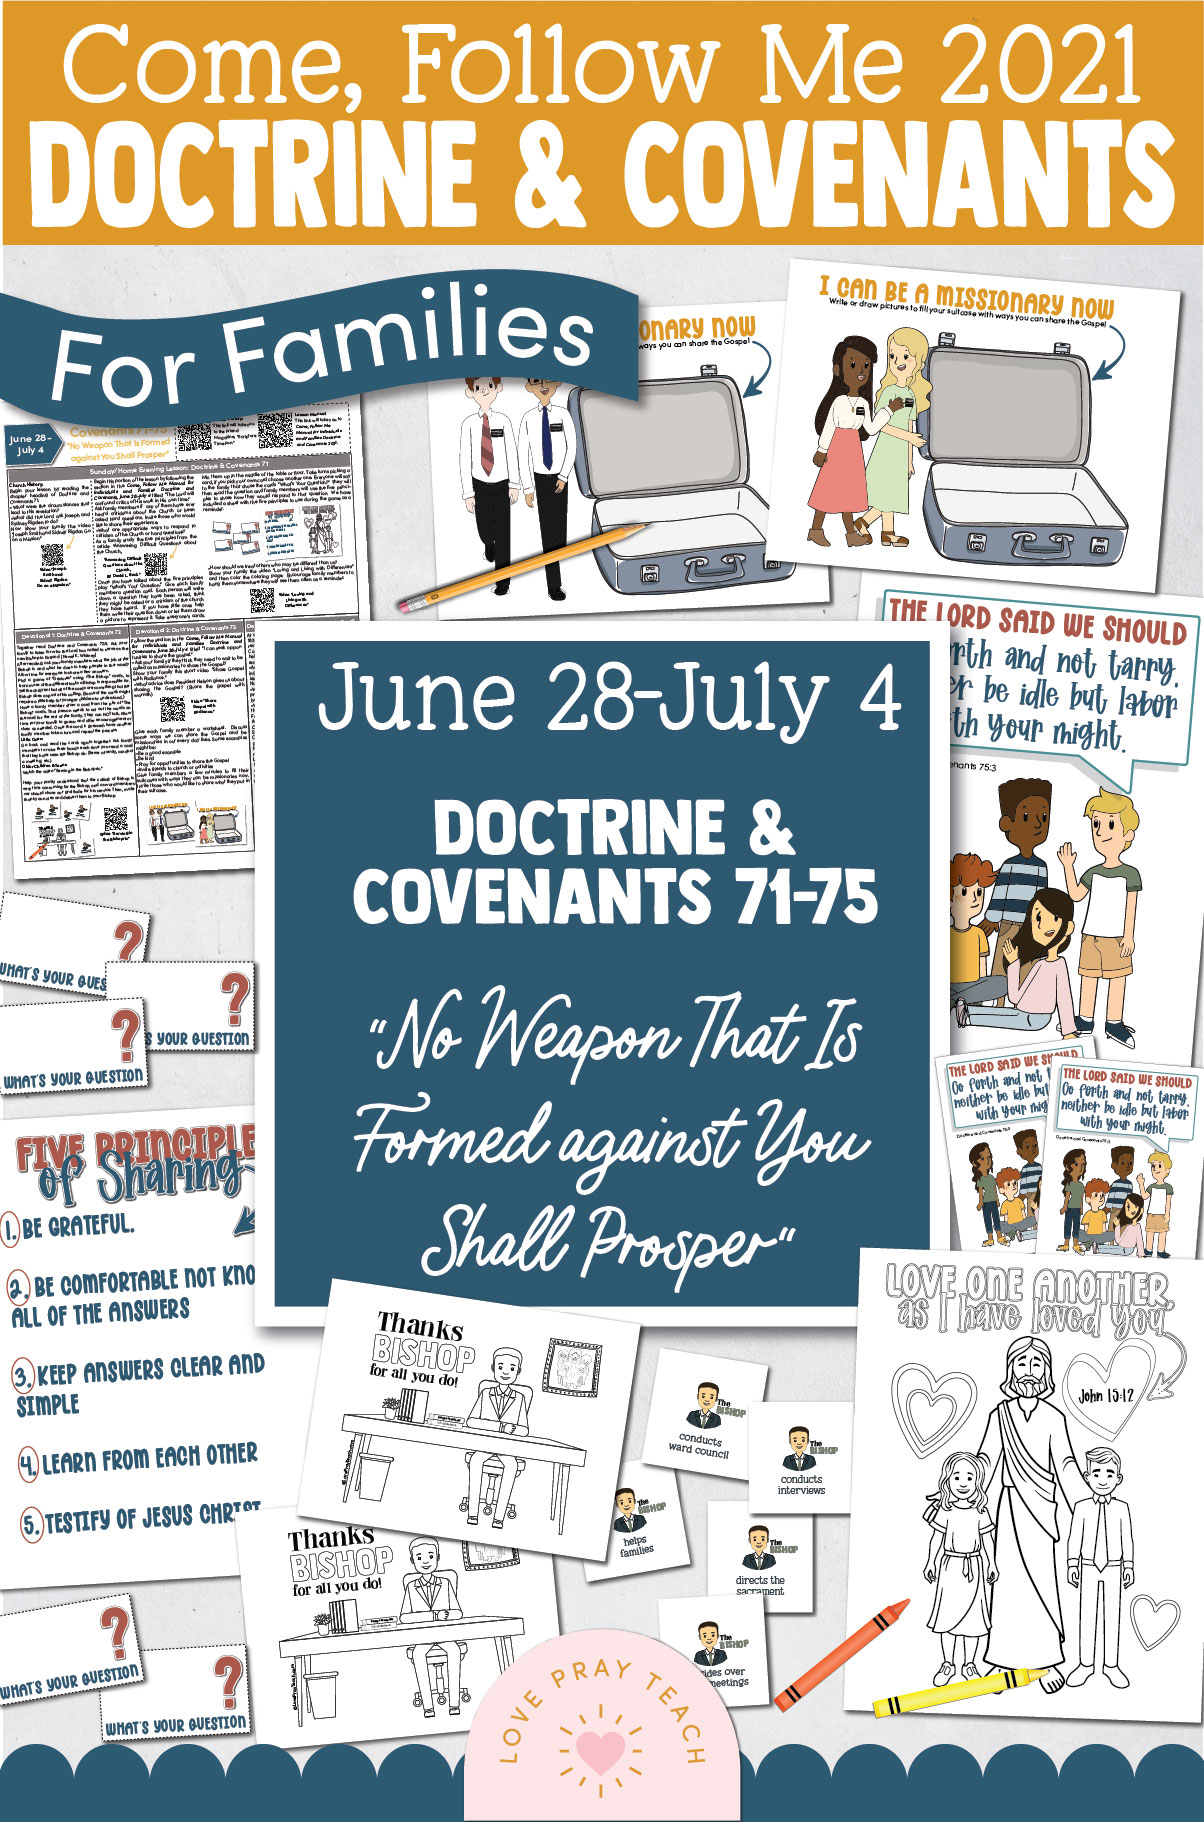 """Come, Follow Me—For Individuals and Families: Doctrine And Covenants 2021, July Week 1 Doctrine and Covenants 71-75: June 28-July 4, """"No Weapon That Is Formed against You Shall Prosper"""""""